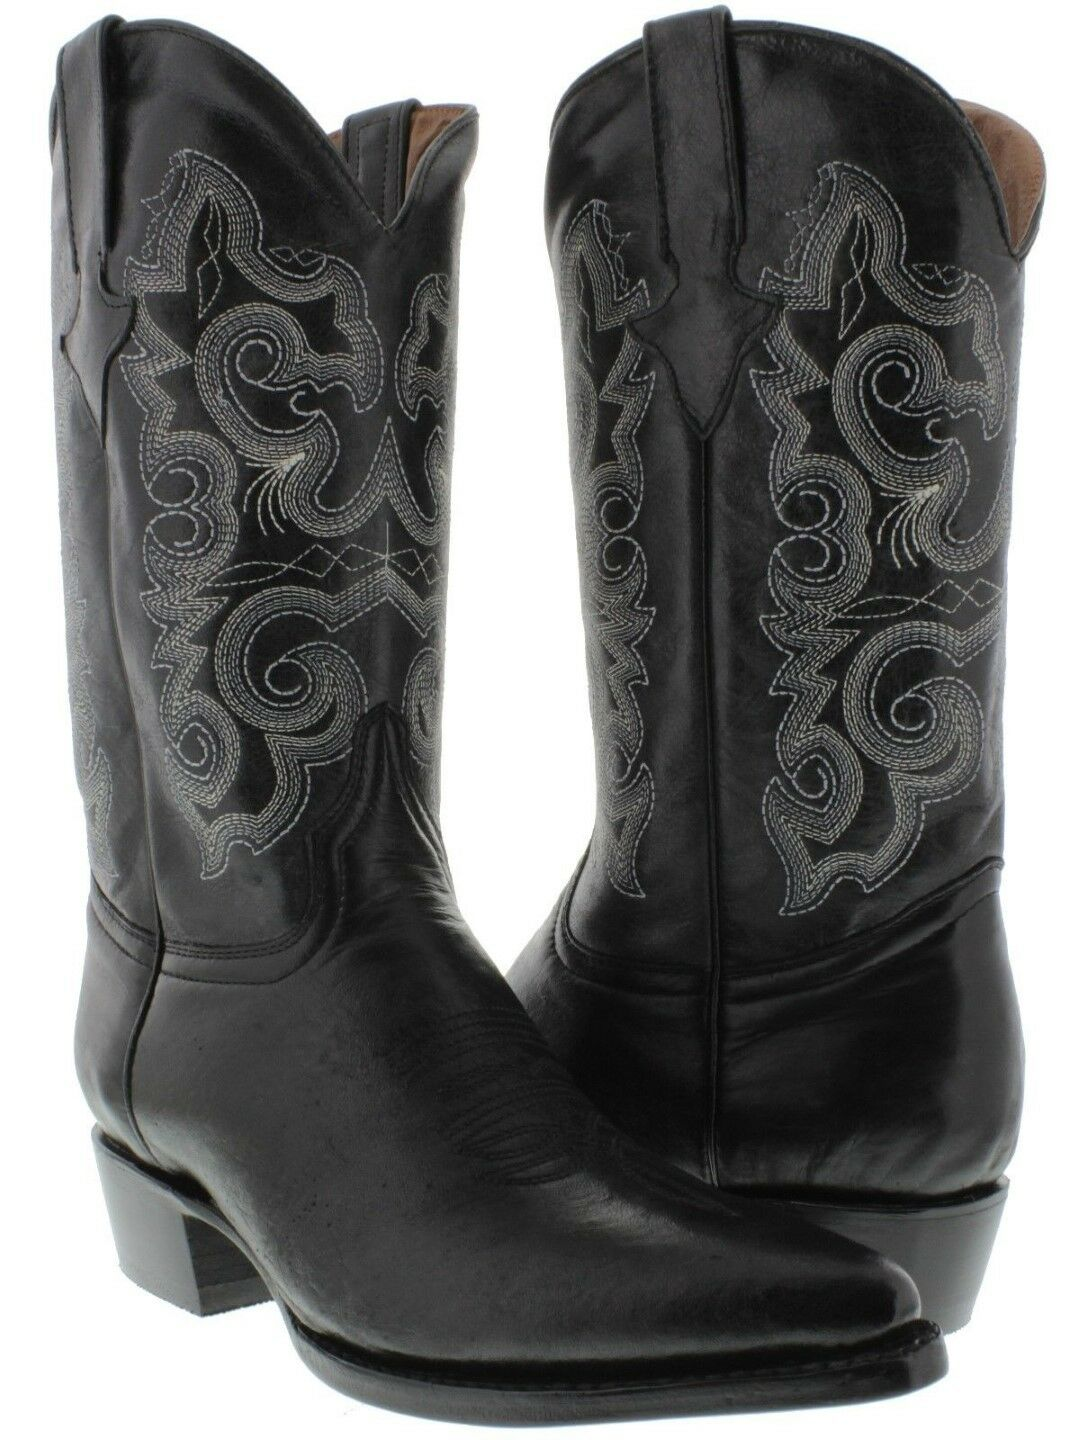 Uomo nero Smooth Smooth Smooth Stitched Leather Design Dress Cowboy stivali Pointed Toe f731e5